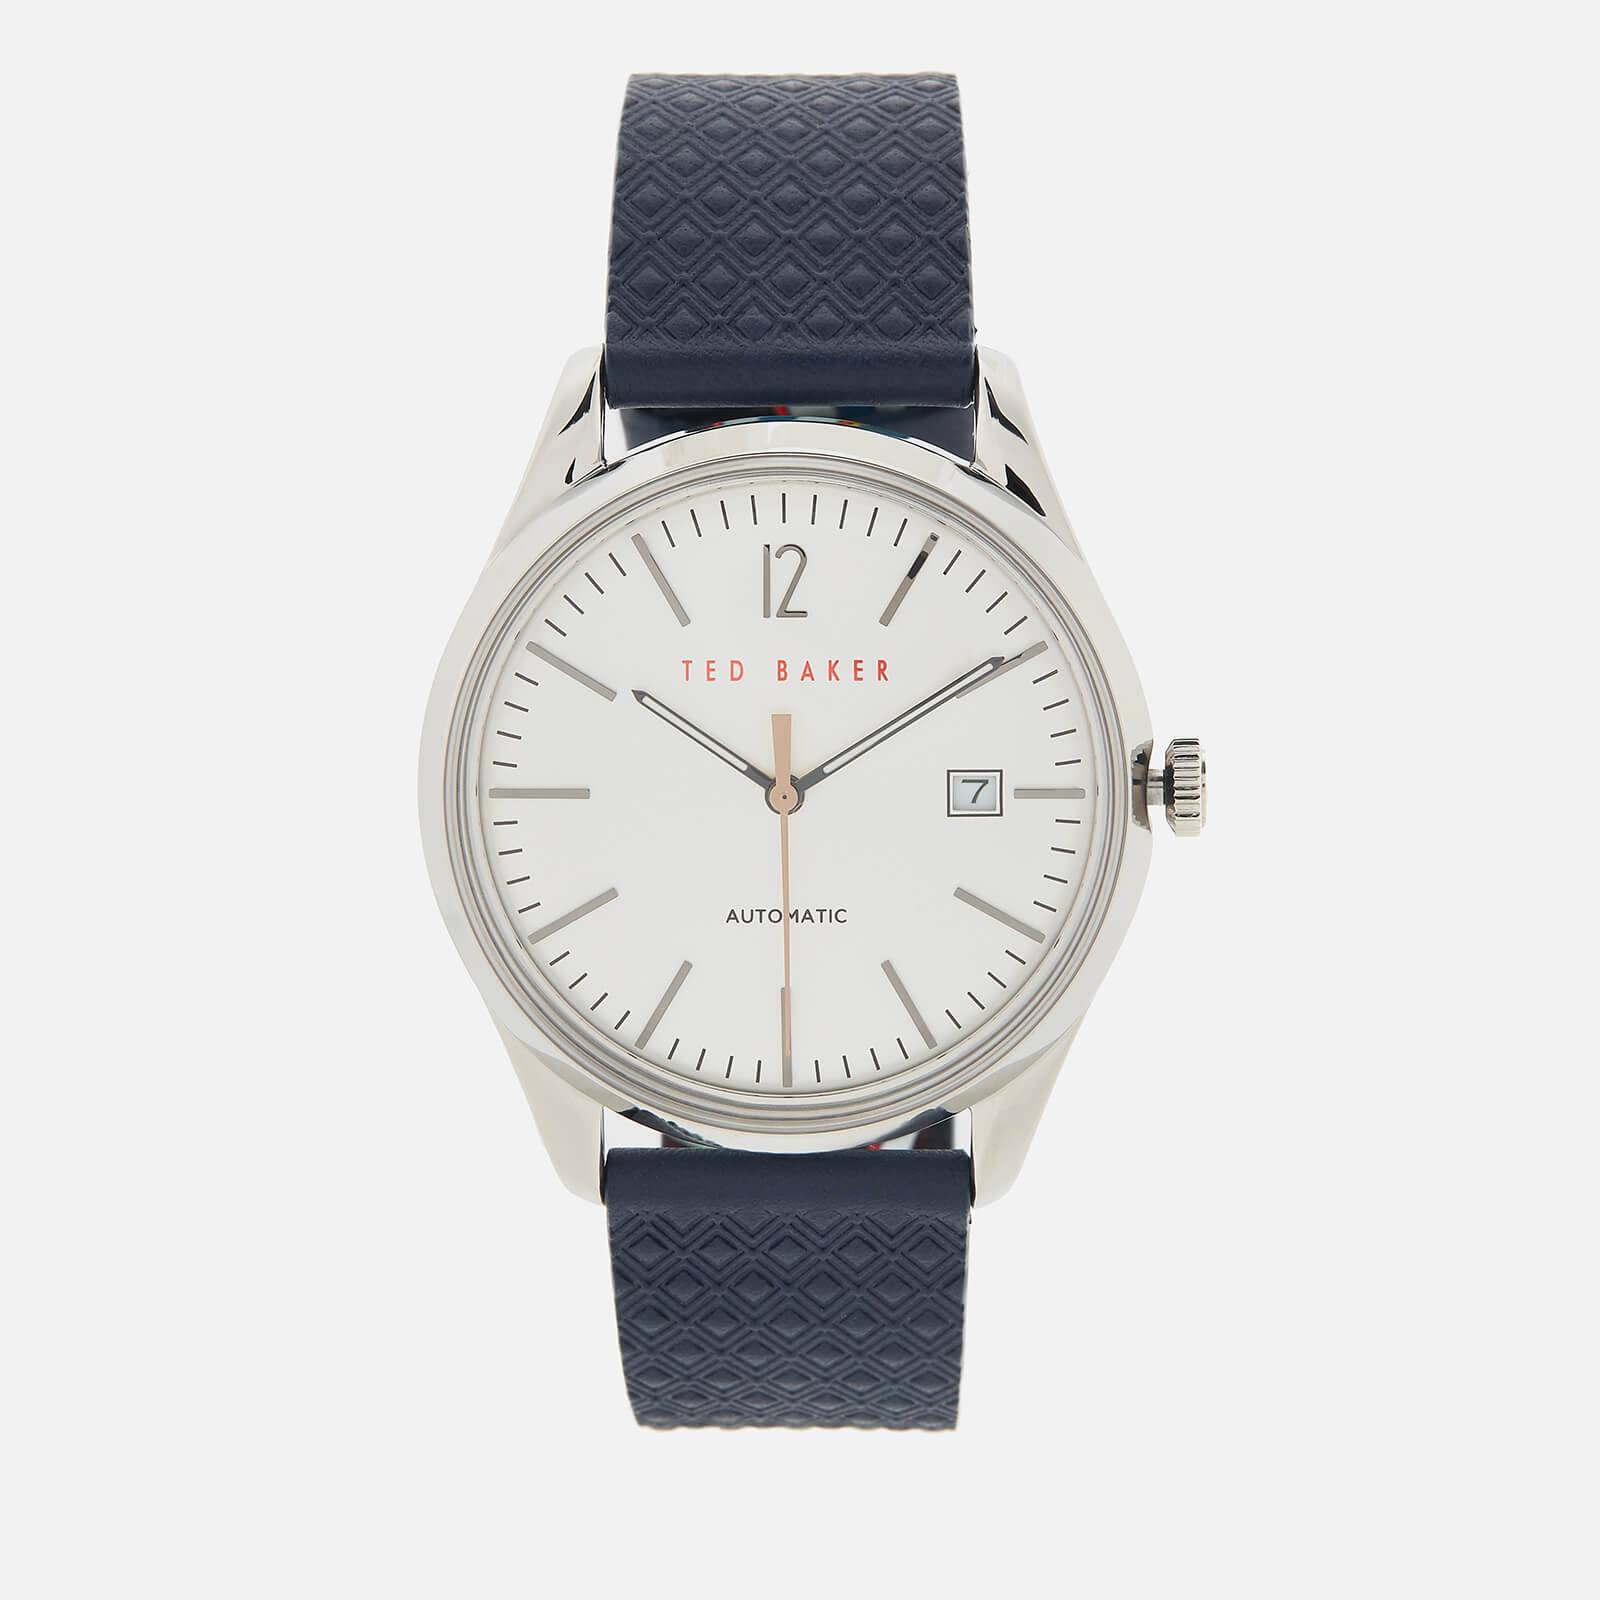 Ted Baker Men's Daquir Watch - White